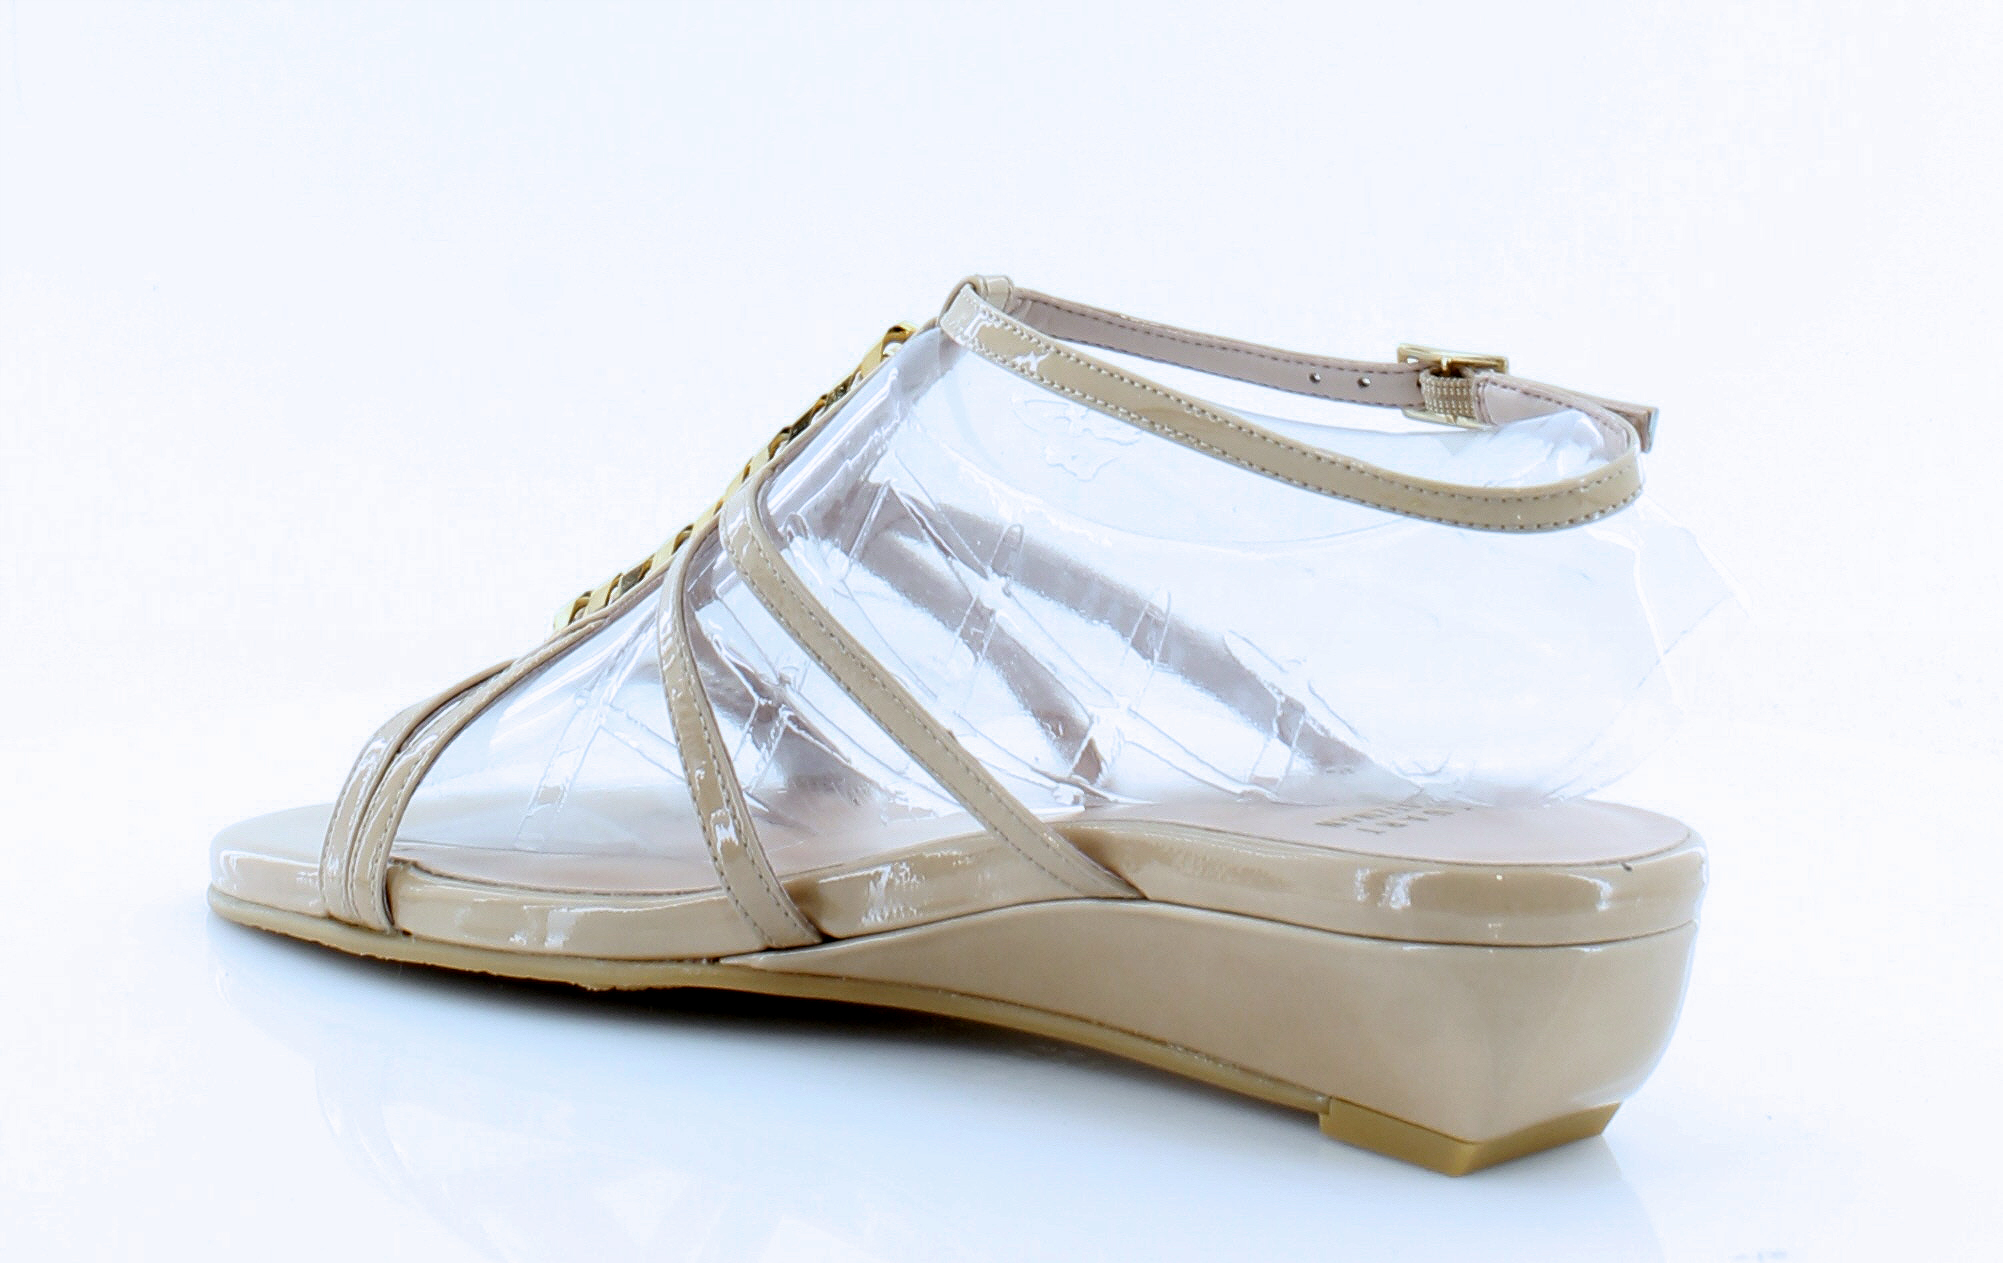 Details about Stuart Weitzman New Tiffy Beige Womens Shoes Size 7.5 M